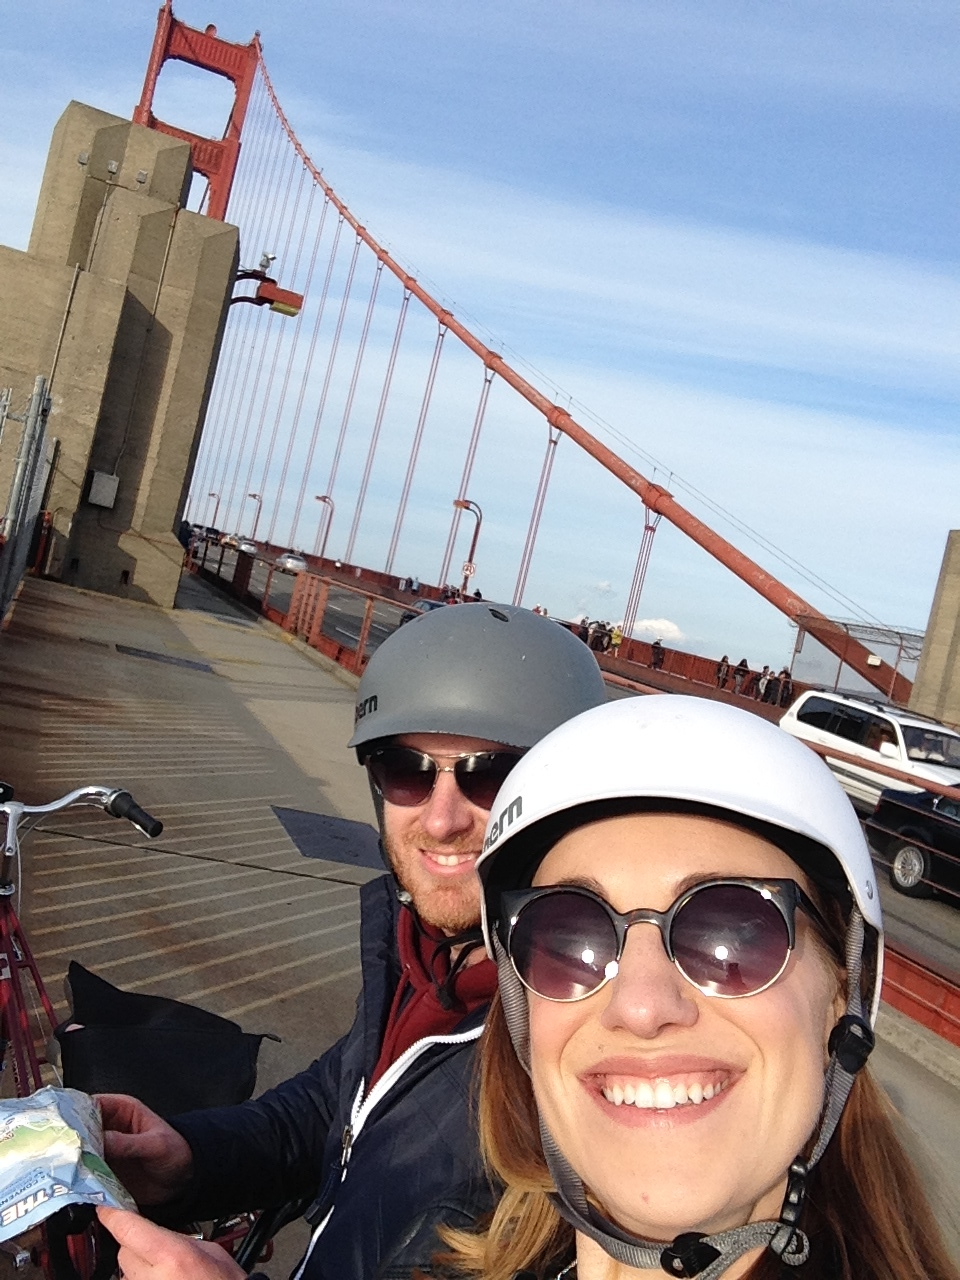 Cycling over the Golden Gate Bridge in San Francisco. One of my favourite days from our honeymoon.